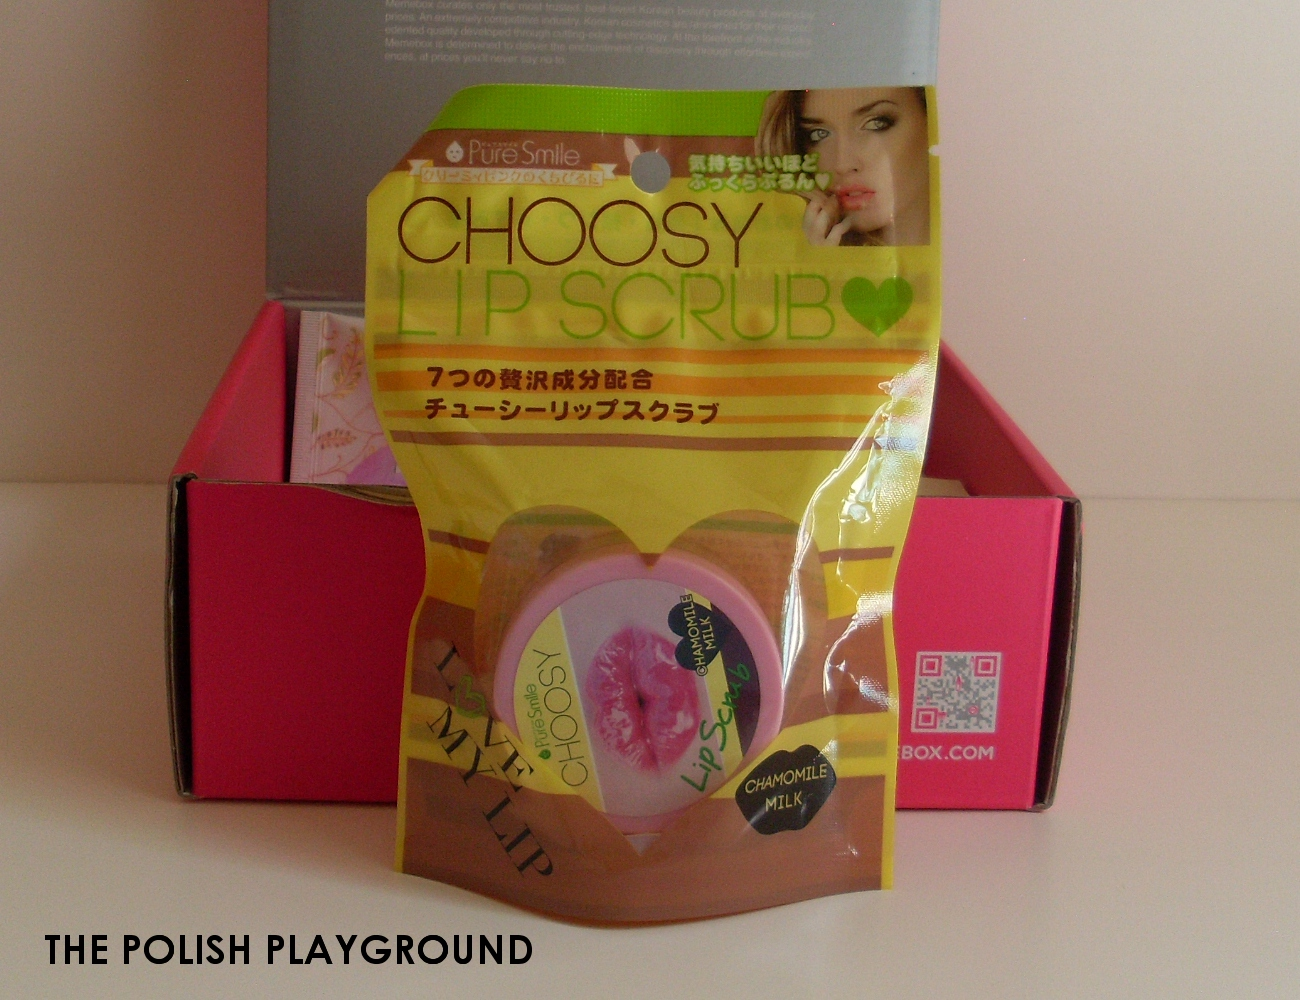 Memebox Special #7 Milk Unboxing - Pure Smile Choosy Lip Scrub in Chamomile Milk